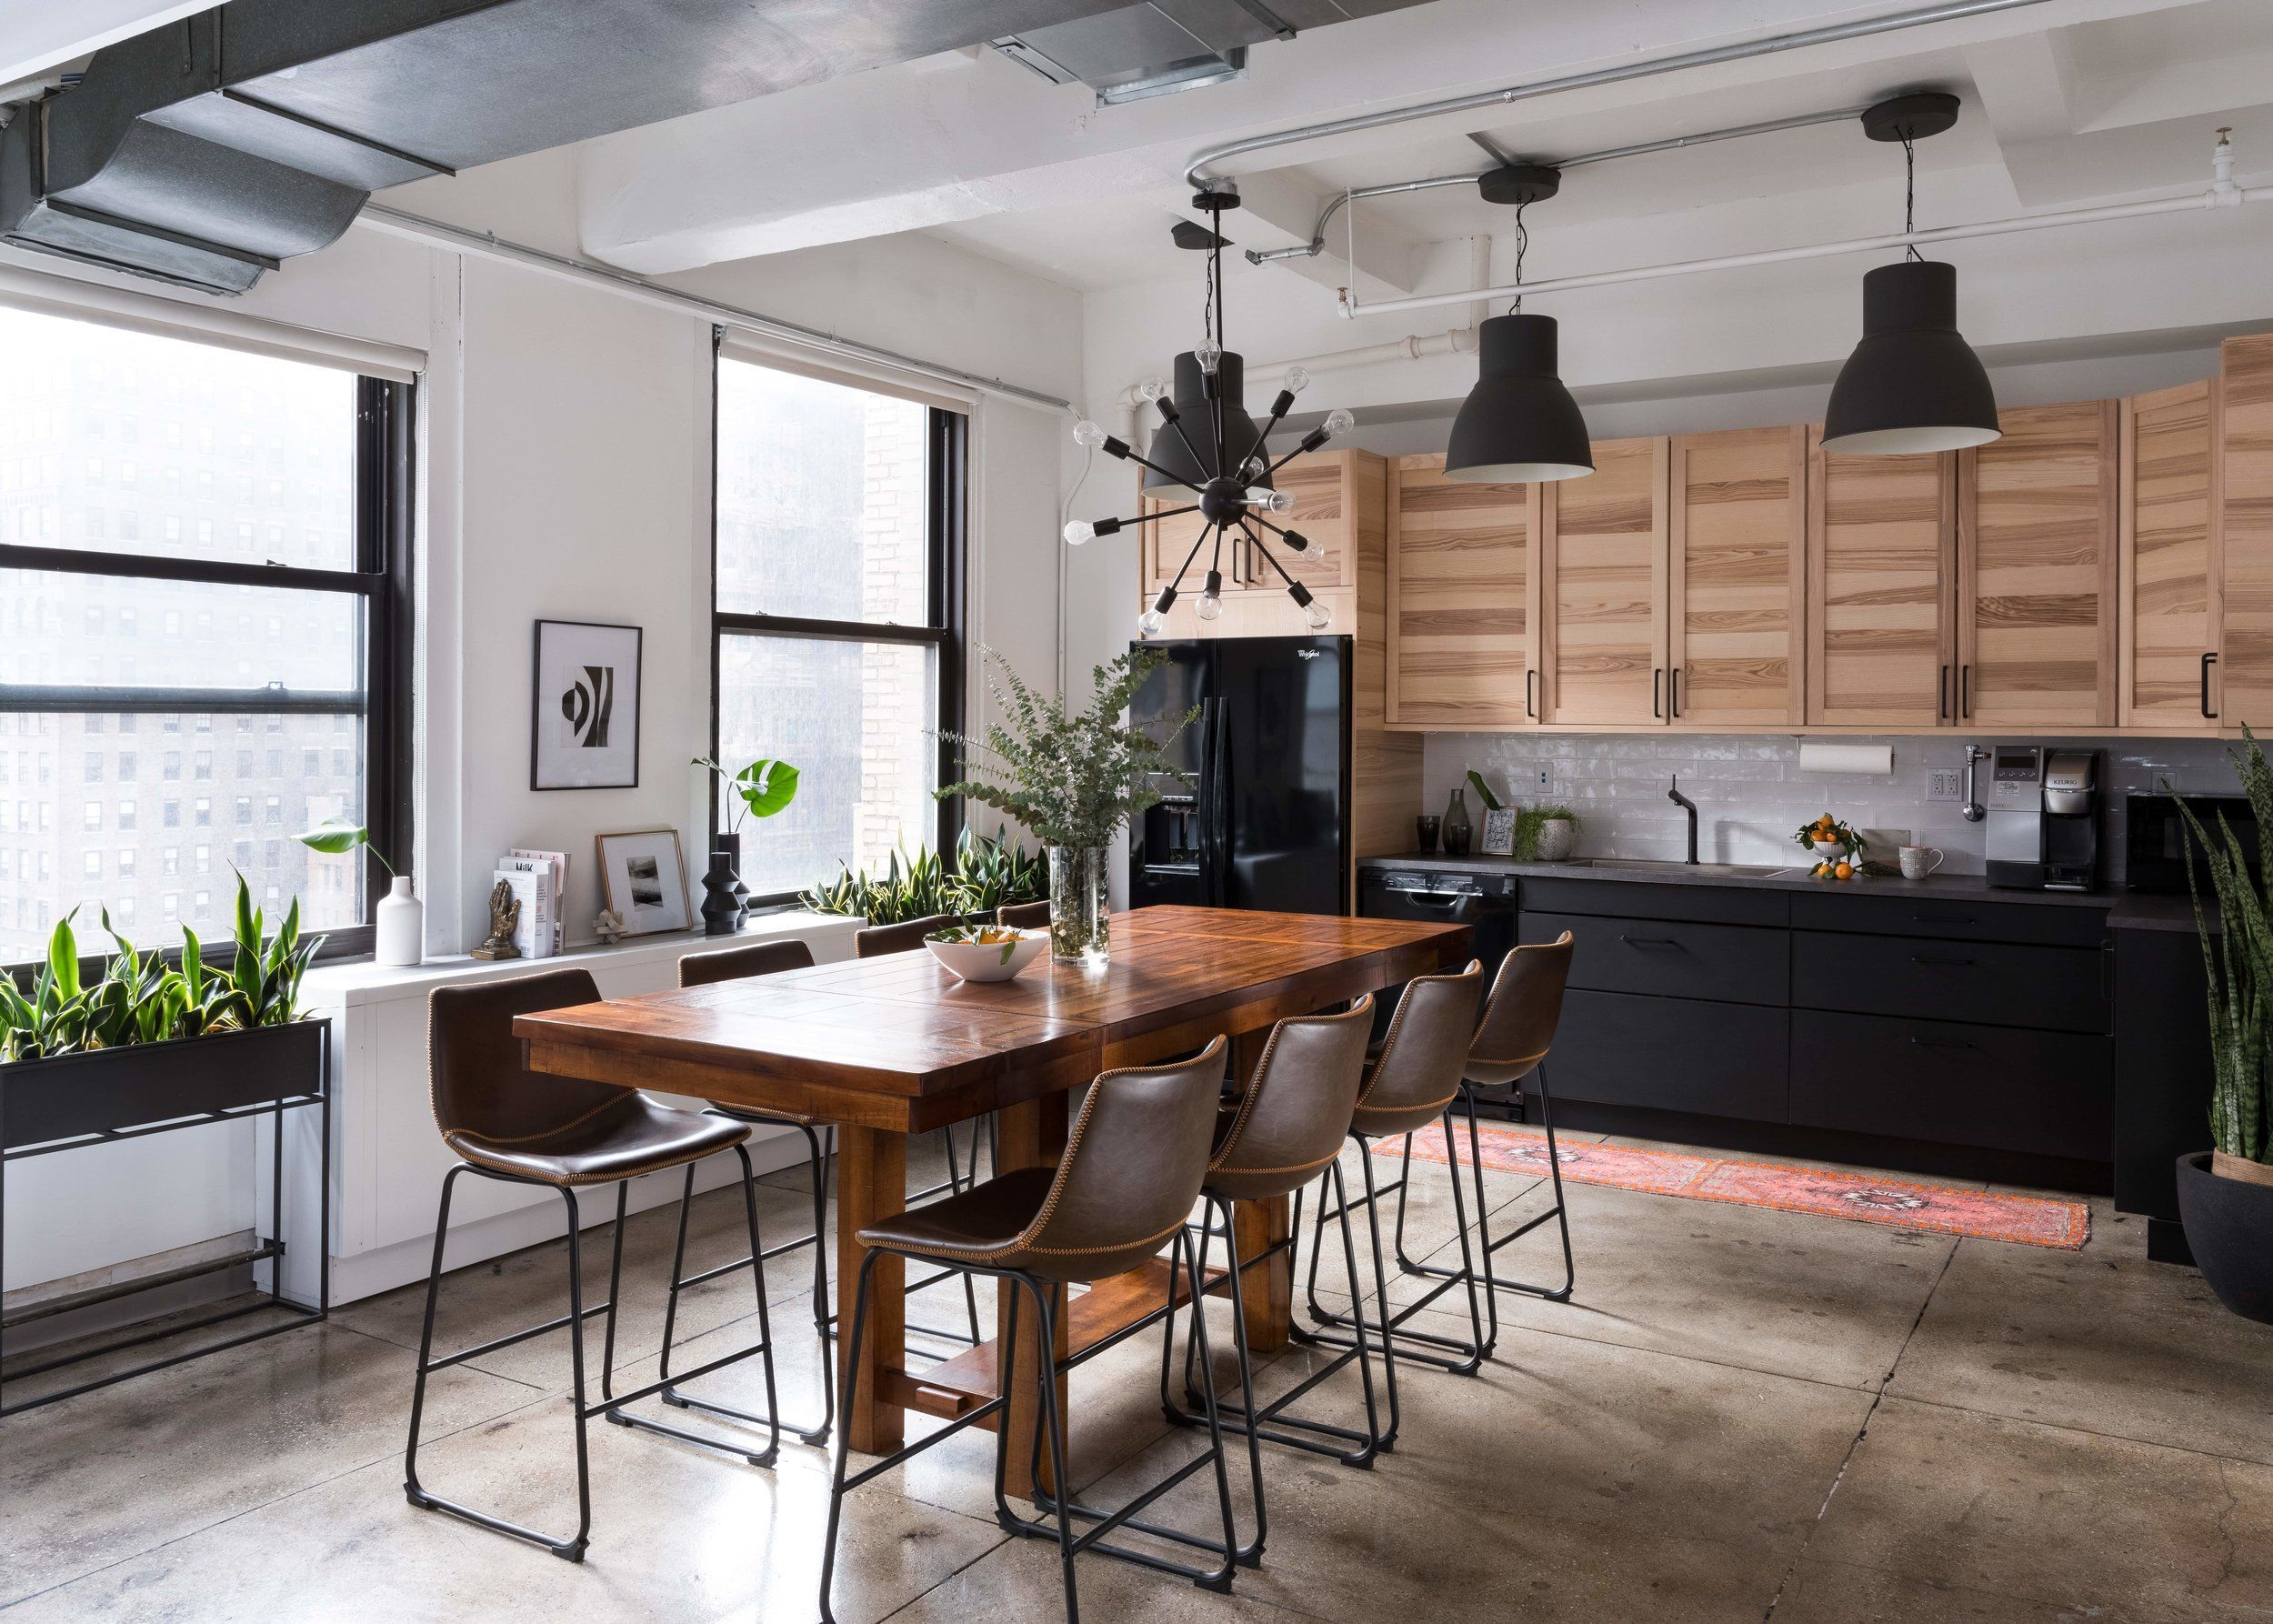 industrial office interior design with ikea kitchen by Lorla